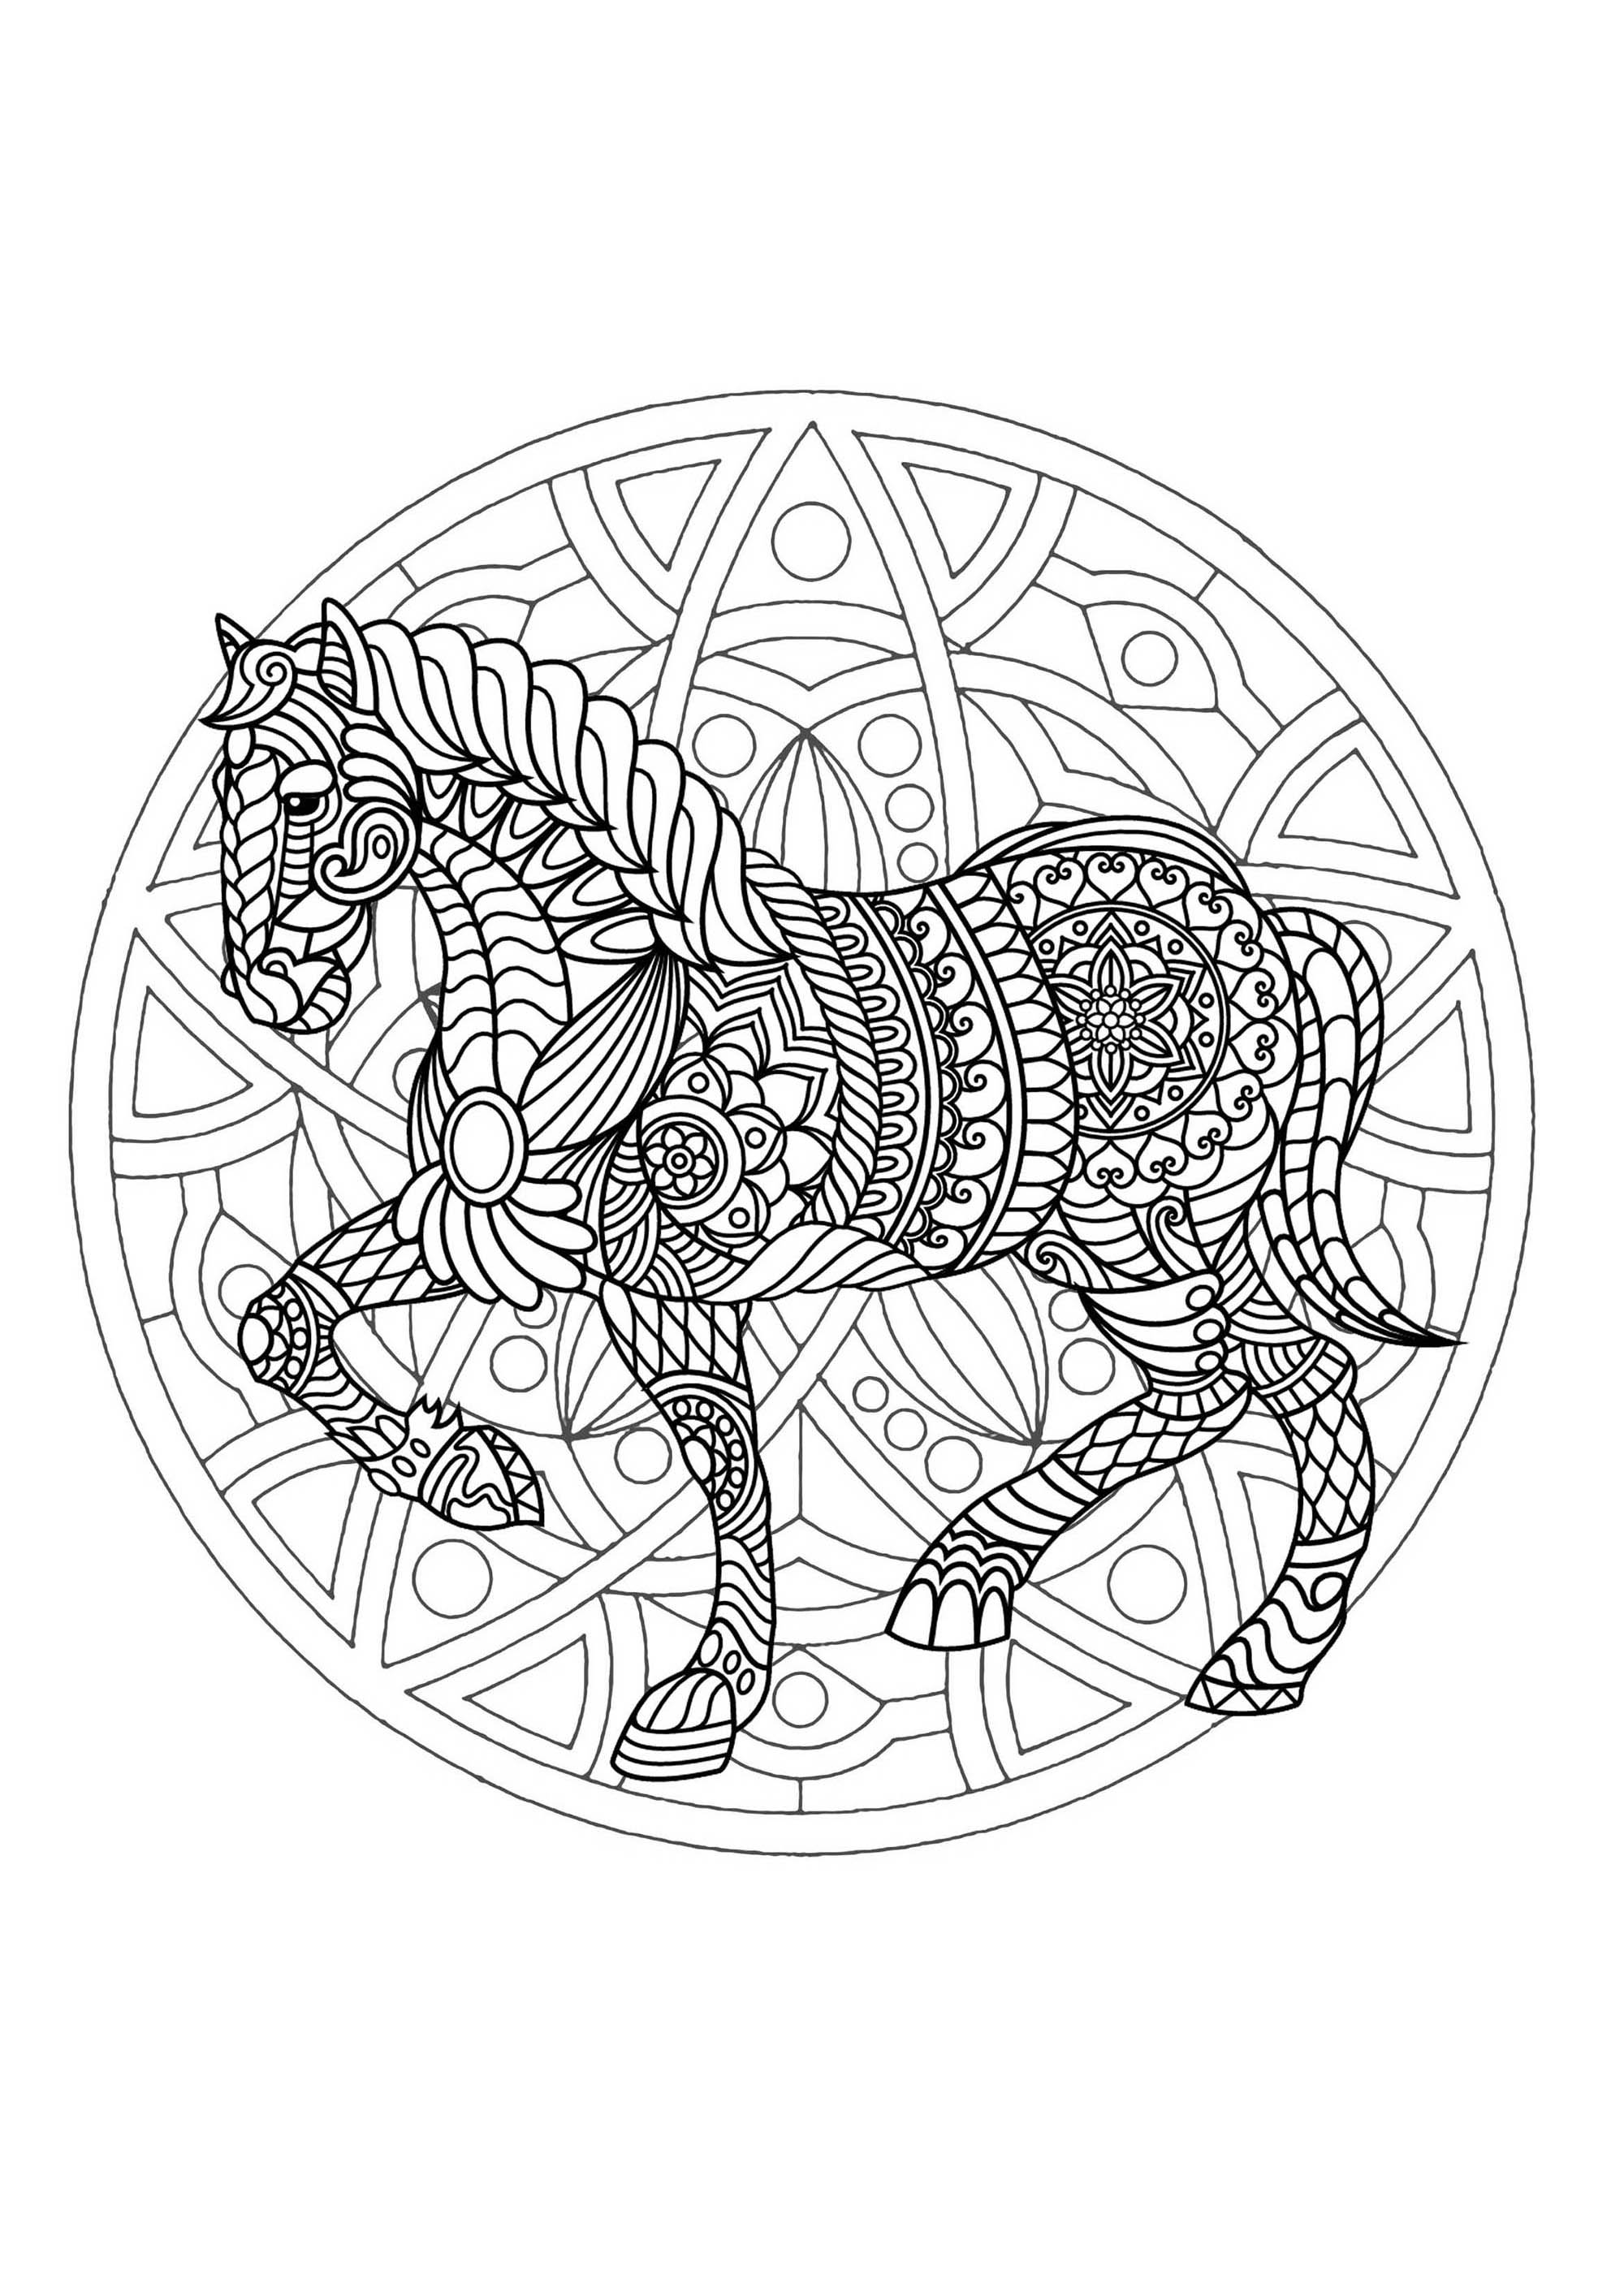 Mandala to color with magnificent Horse and simple geometric patterns in background